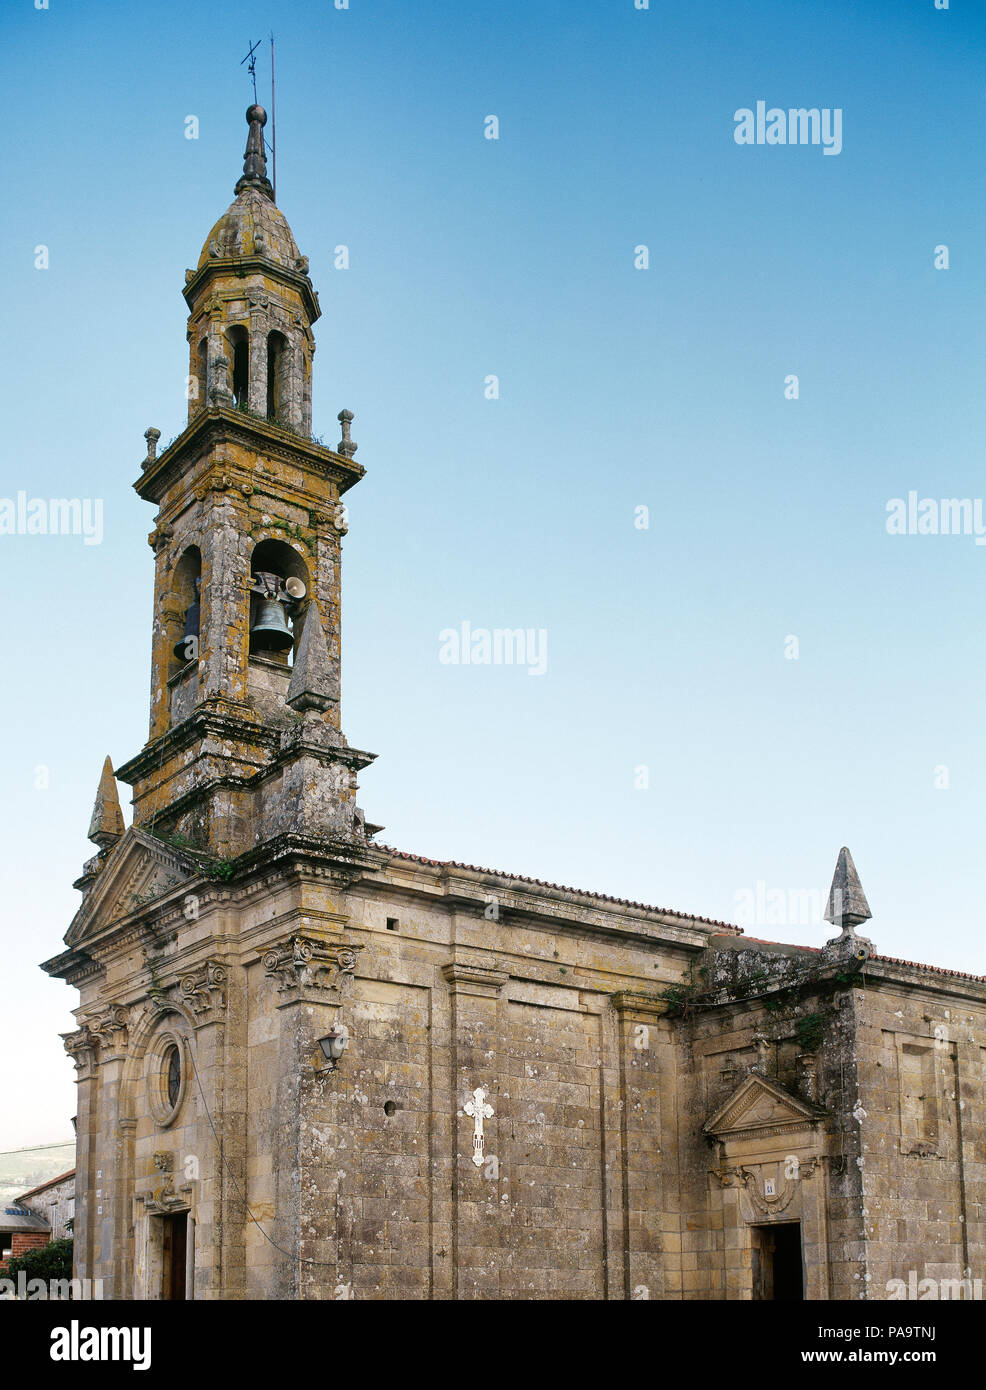 Spain, Galicia, La Coruña province, Comarca of Muros, Carnota. Santa Columba de Carnota's Church. It was built in 18th century, in classical Baroque style. The tower was added in the belfry in the 19th century, work of the master Carlos Aboy. Neoclassic forms in the main facade. - Stock Image